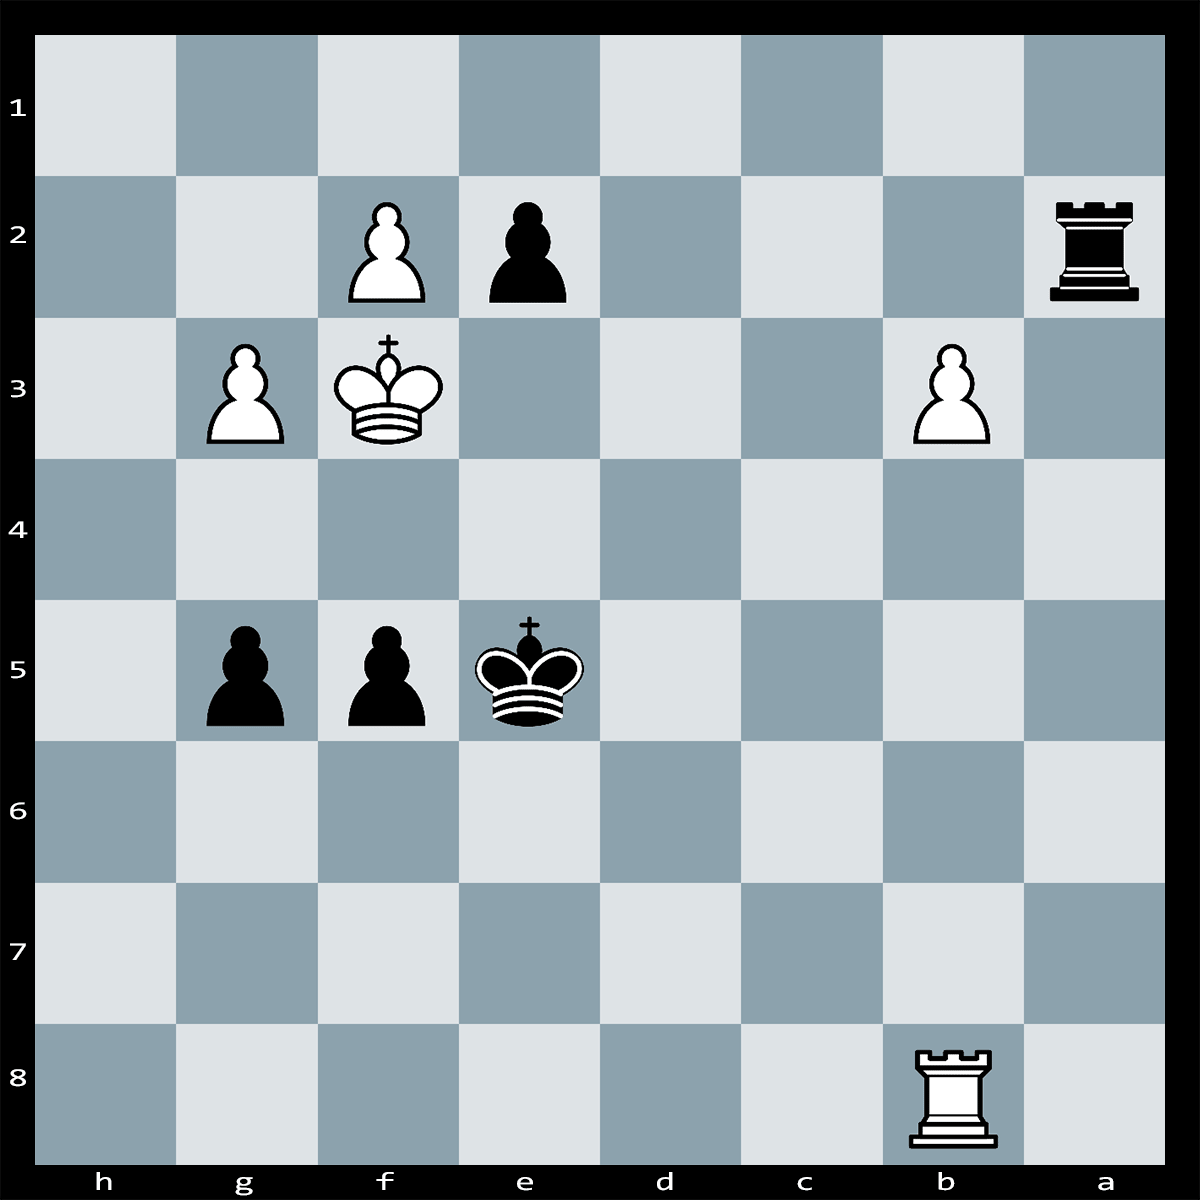 Mate in 3 Moves, Black to Play | Chess Puzzles #173